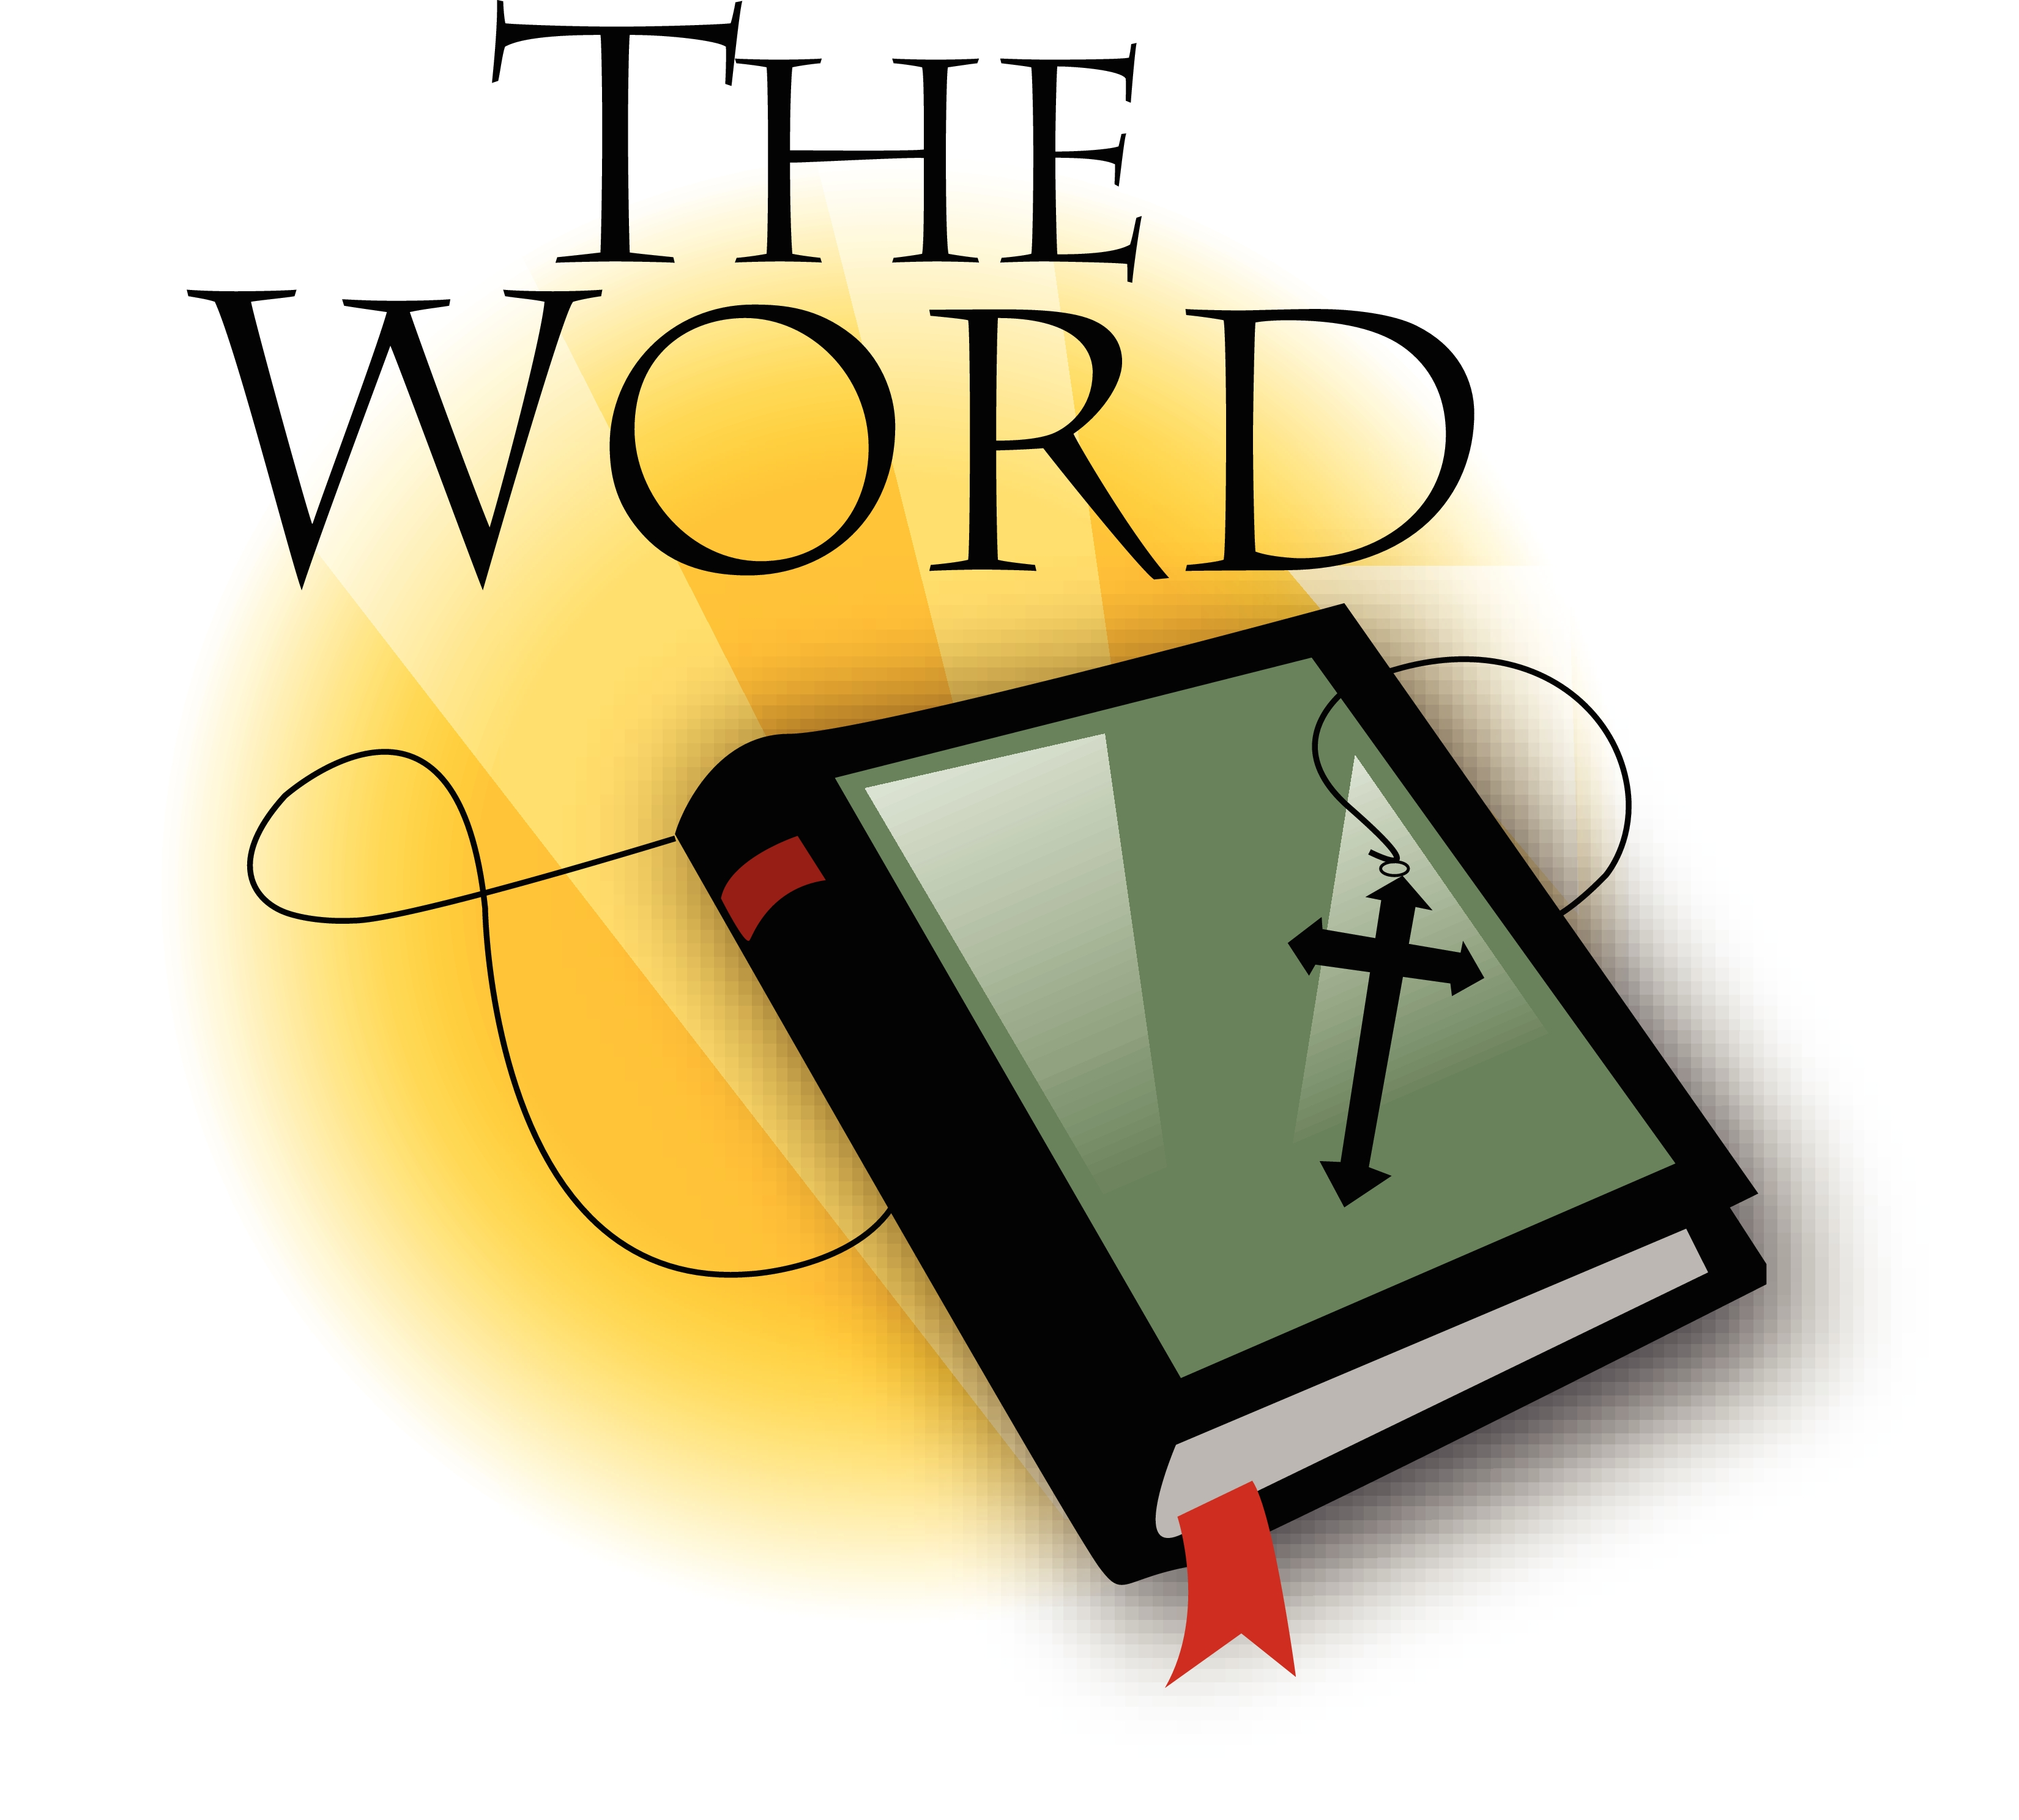 Word Bible Clipart.